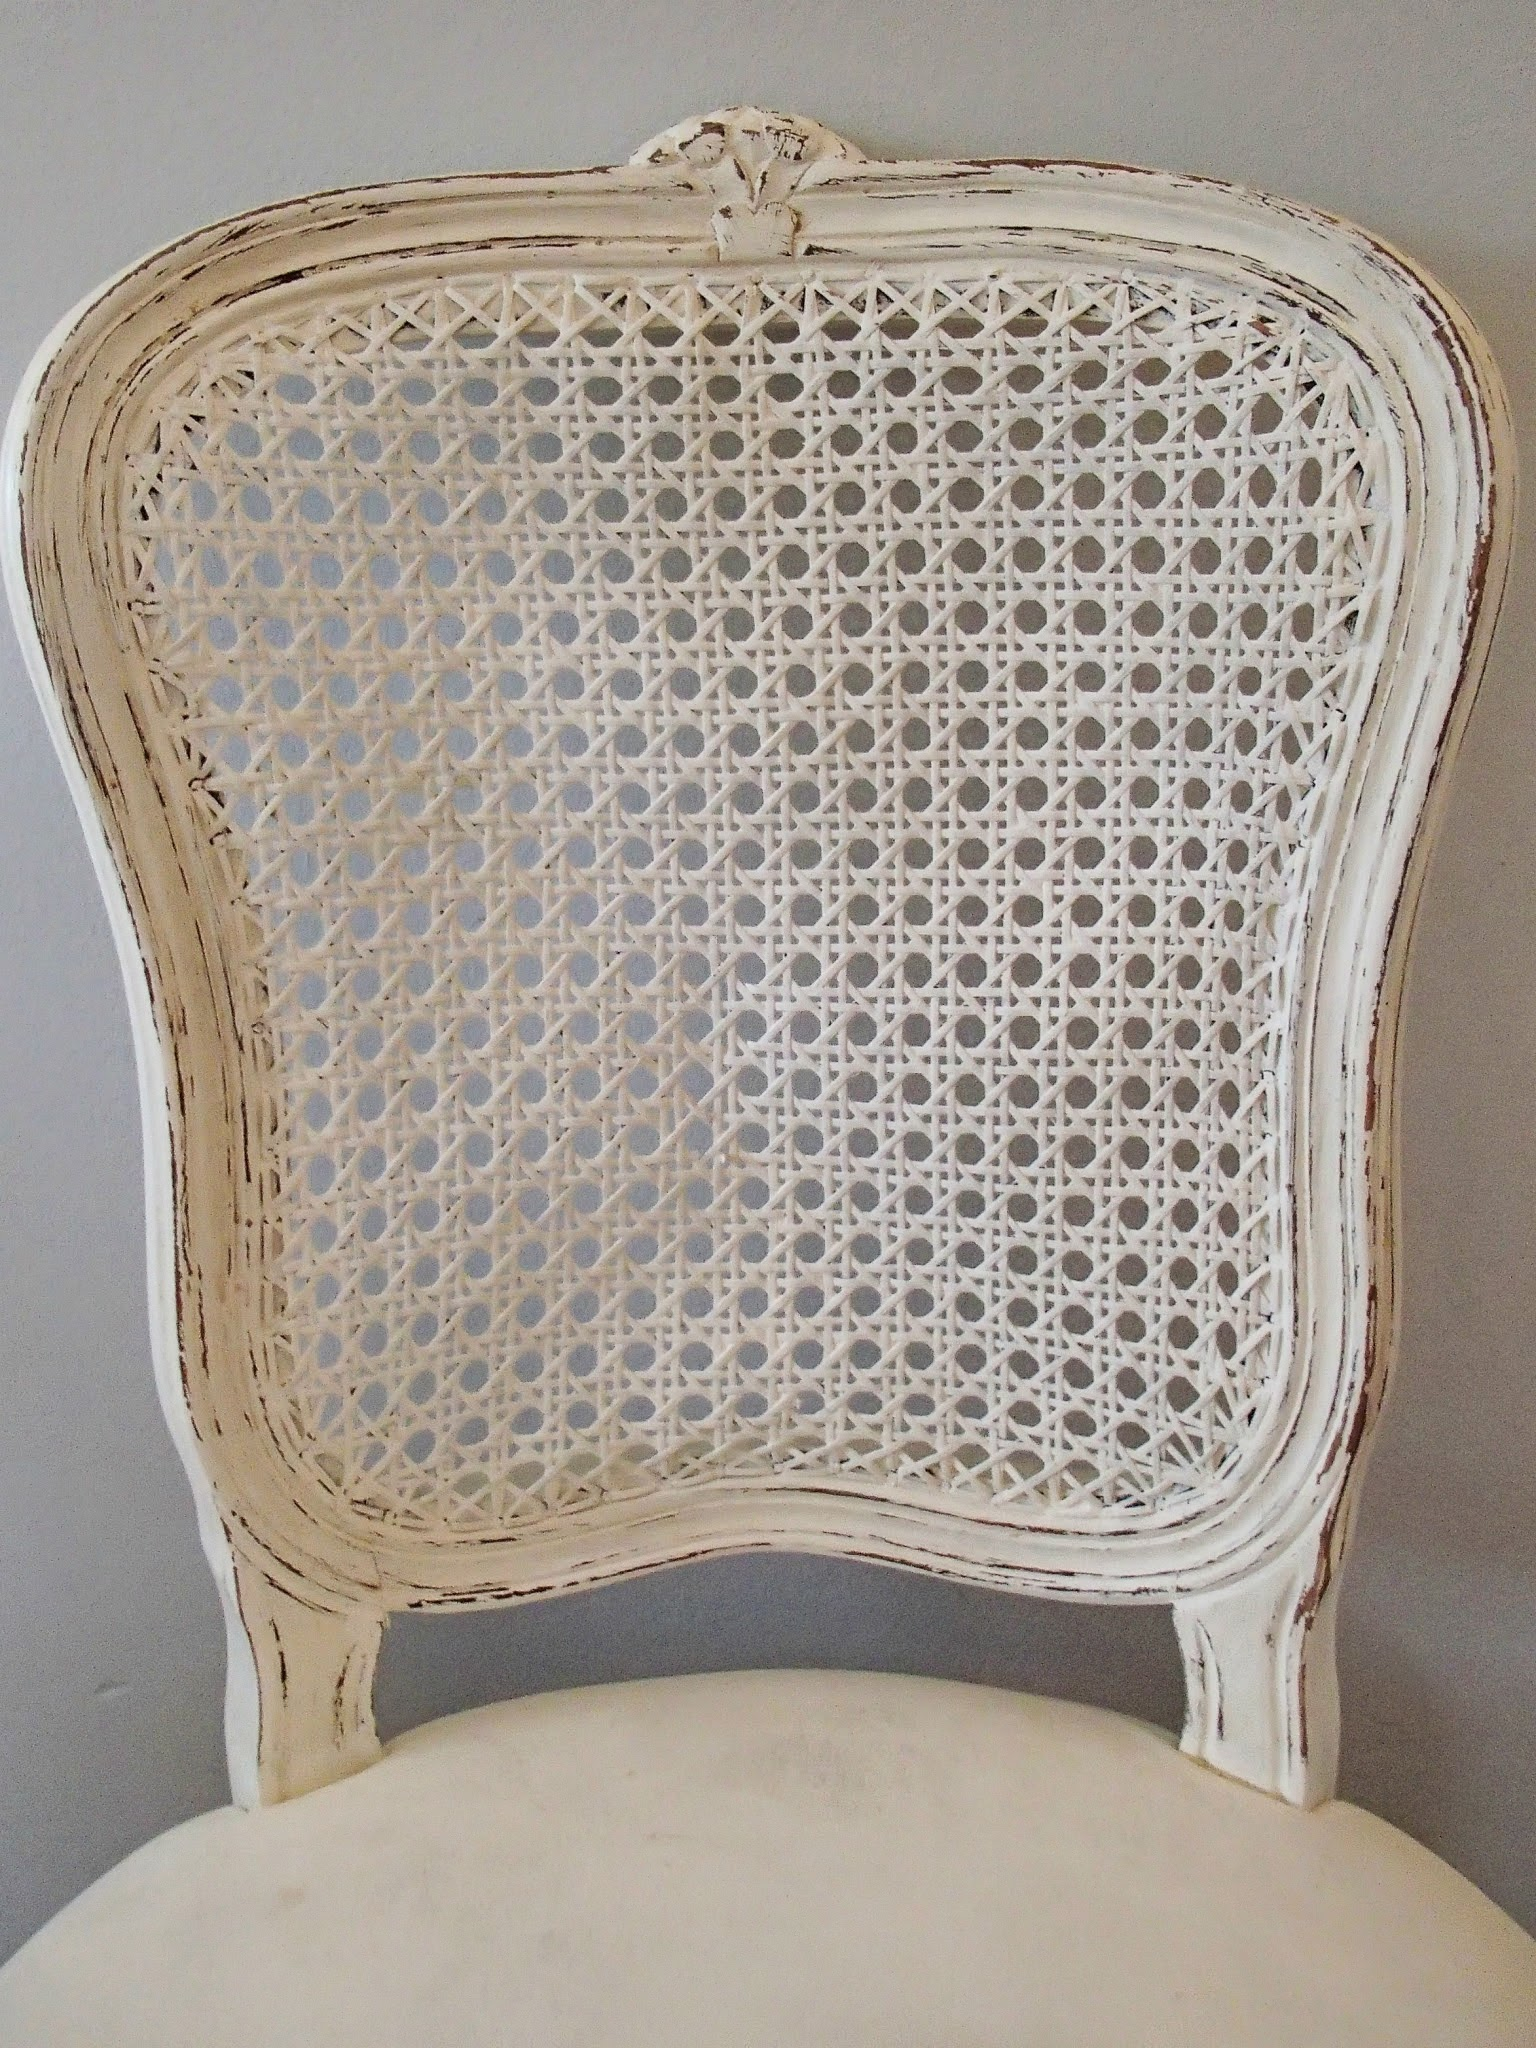 D D S Cottage And Design Creamy White French Cane Chair